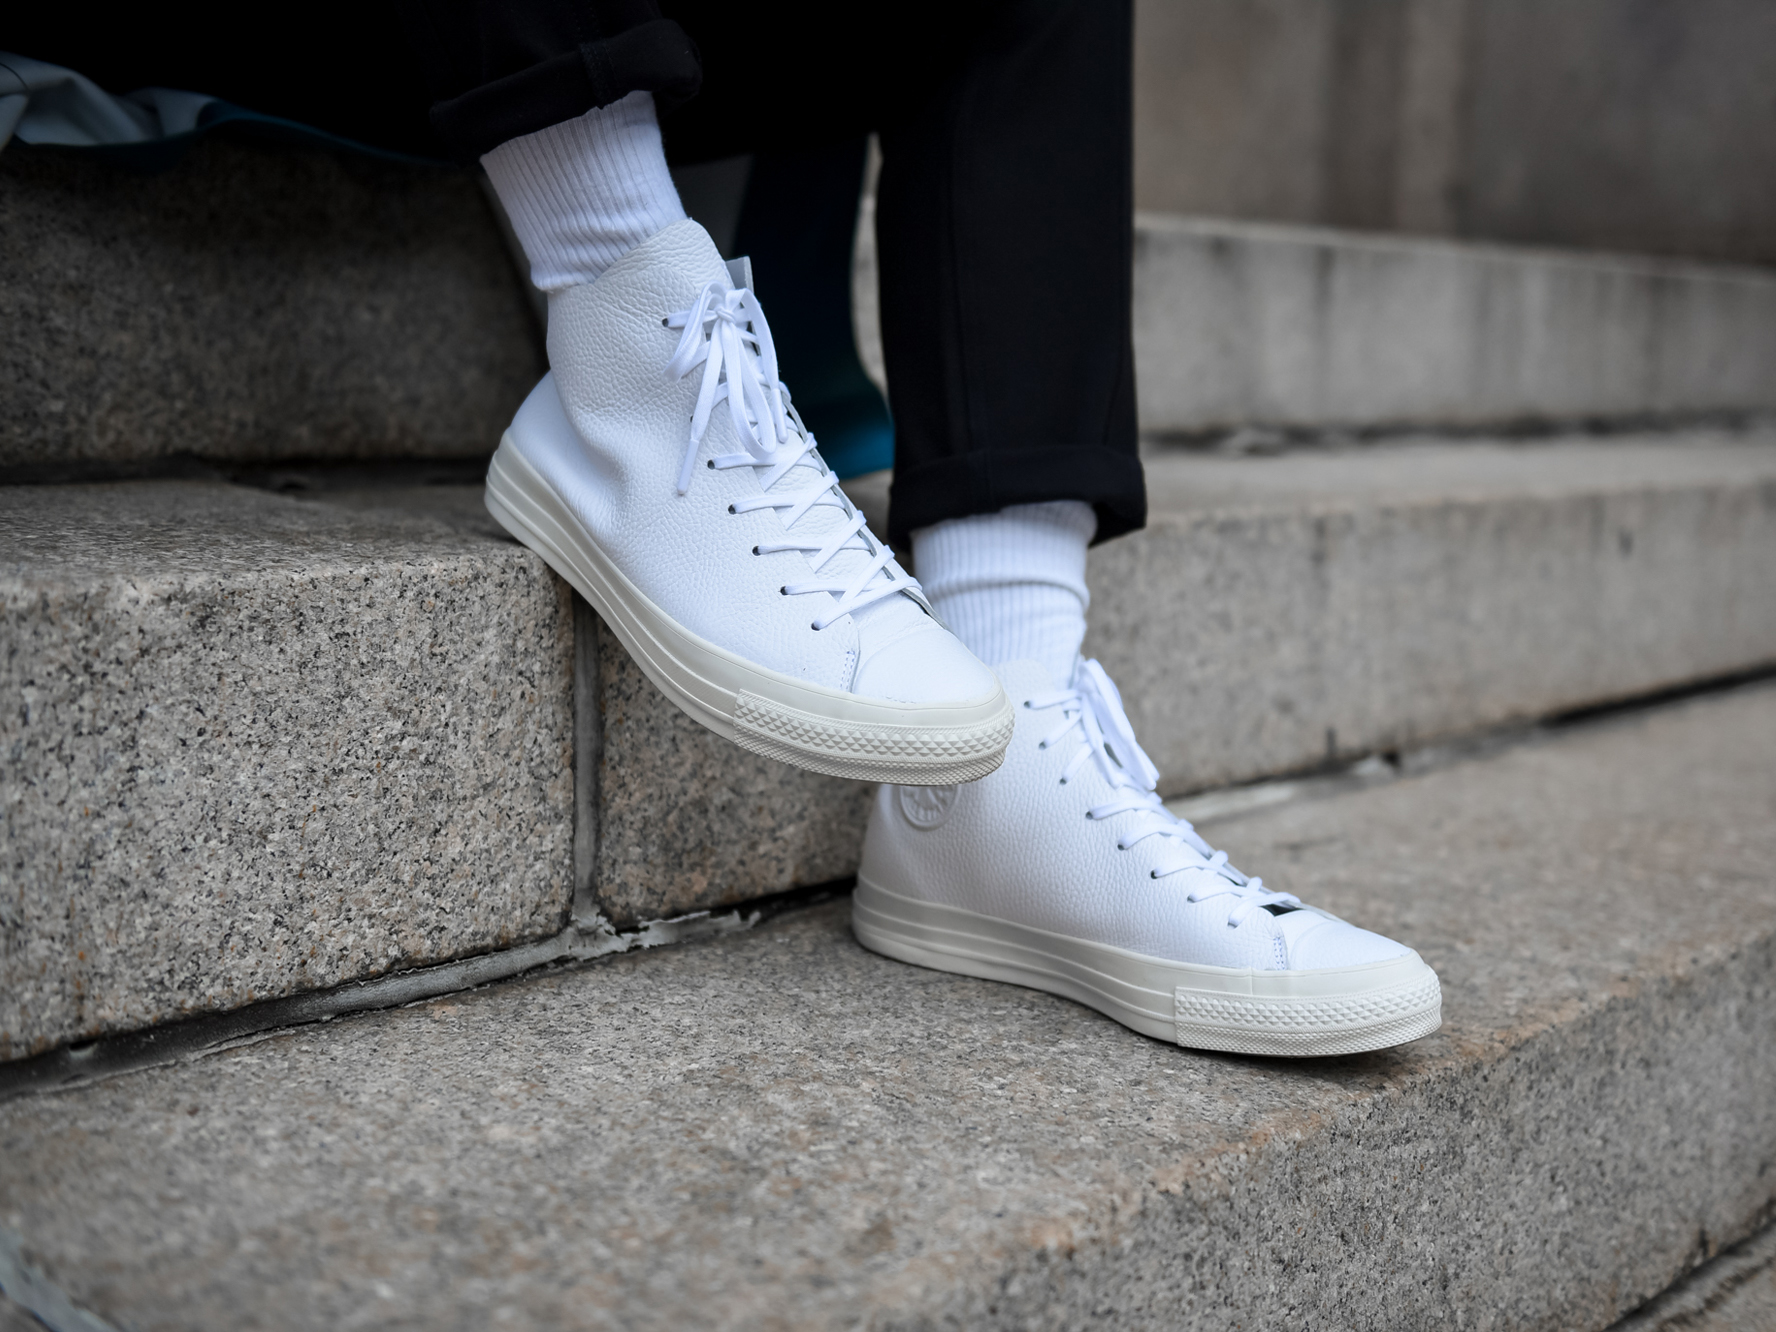 THE CONVERSE ALL STAR PRIME HIGH TOP UNISEX SHOE